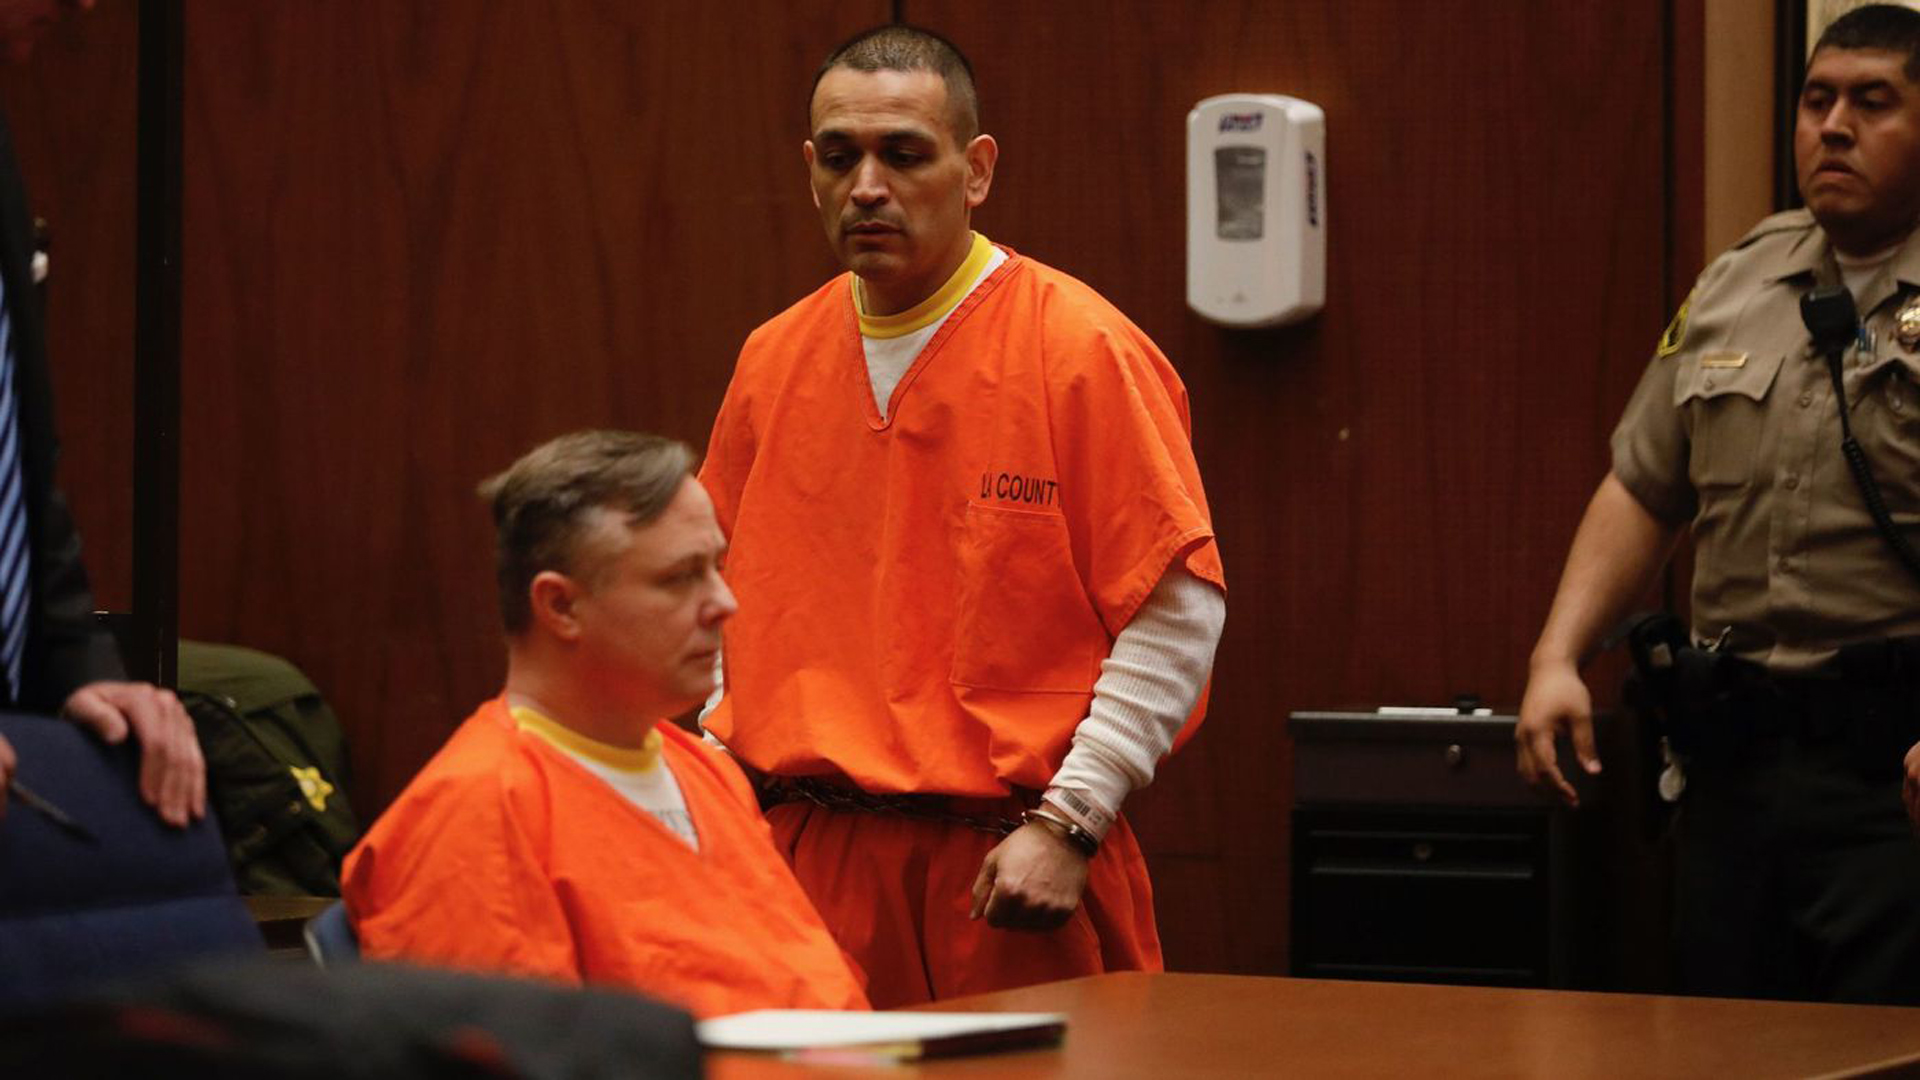 Los Angeles police officers James C. Nichols (seated) and Luis Valenzuela entered their no-contest pleas to sexually assaulting multiple women in a downtown Los Angeles courtroom. (Credit: Gary Coronado / Los Angeles Times)